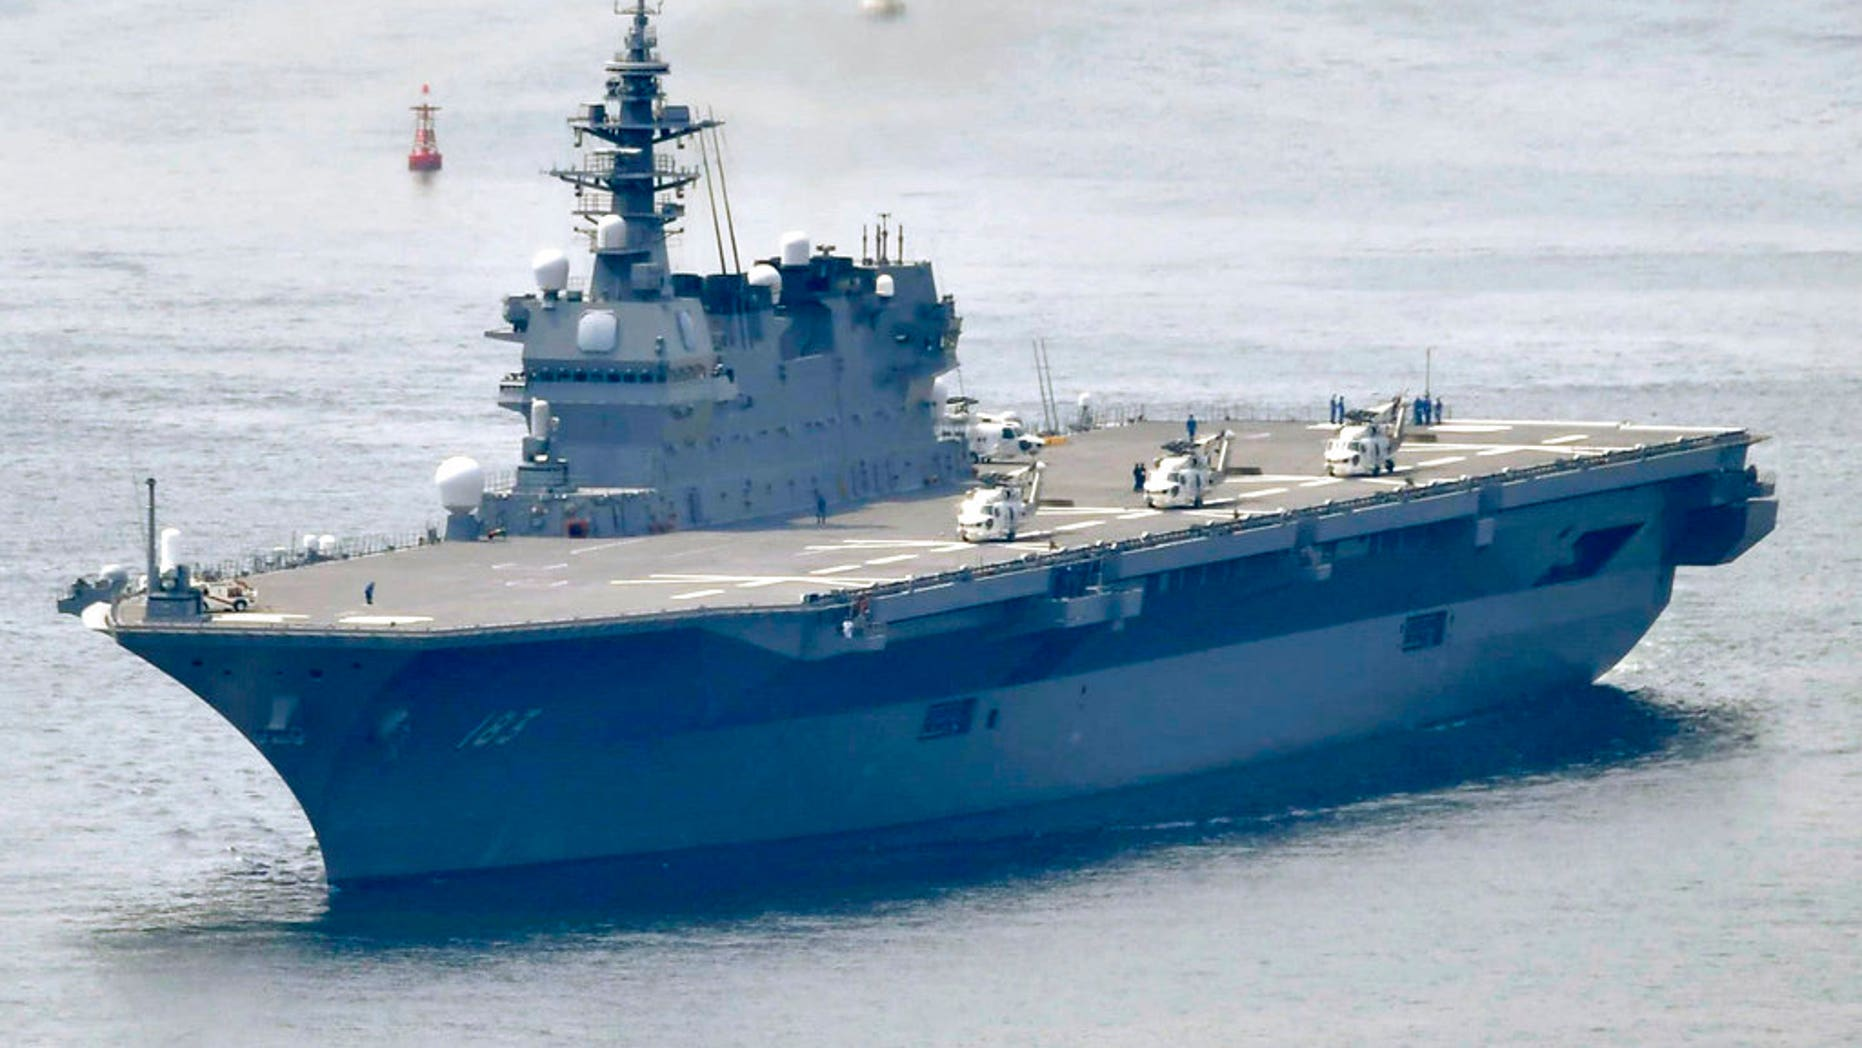 Japan plans major defence spending while navigating its pacifist constitution